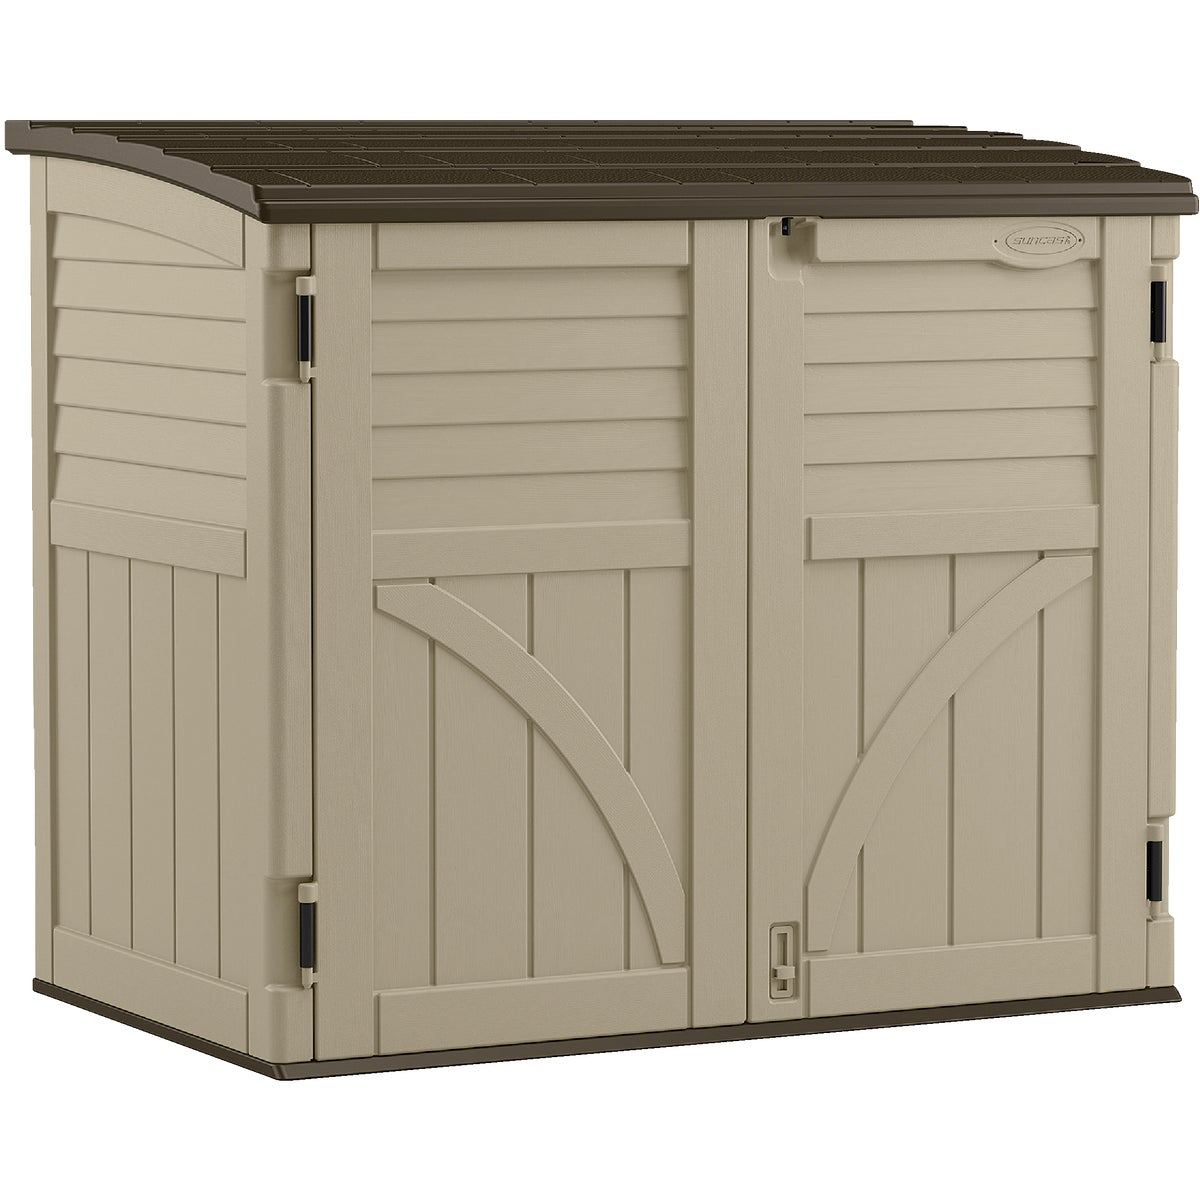 34CUFT HORZ STORAGE SHED